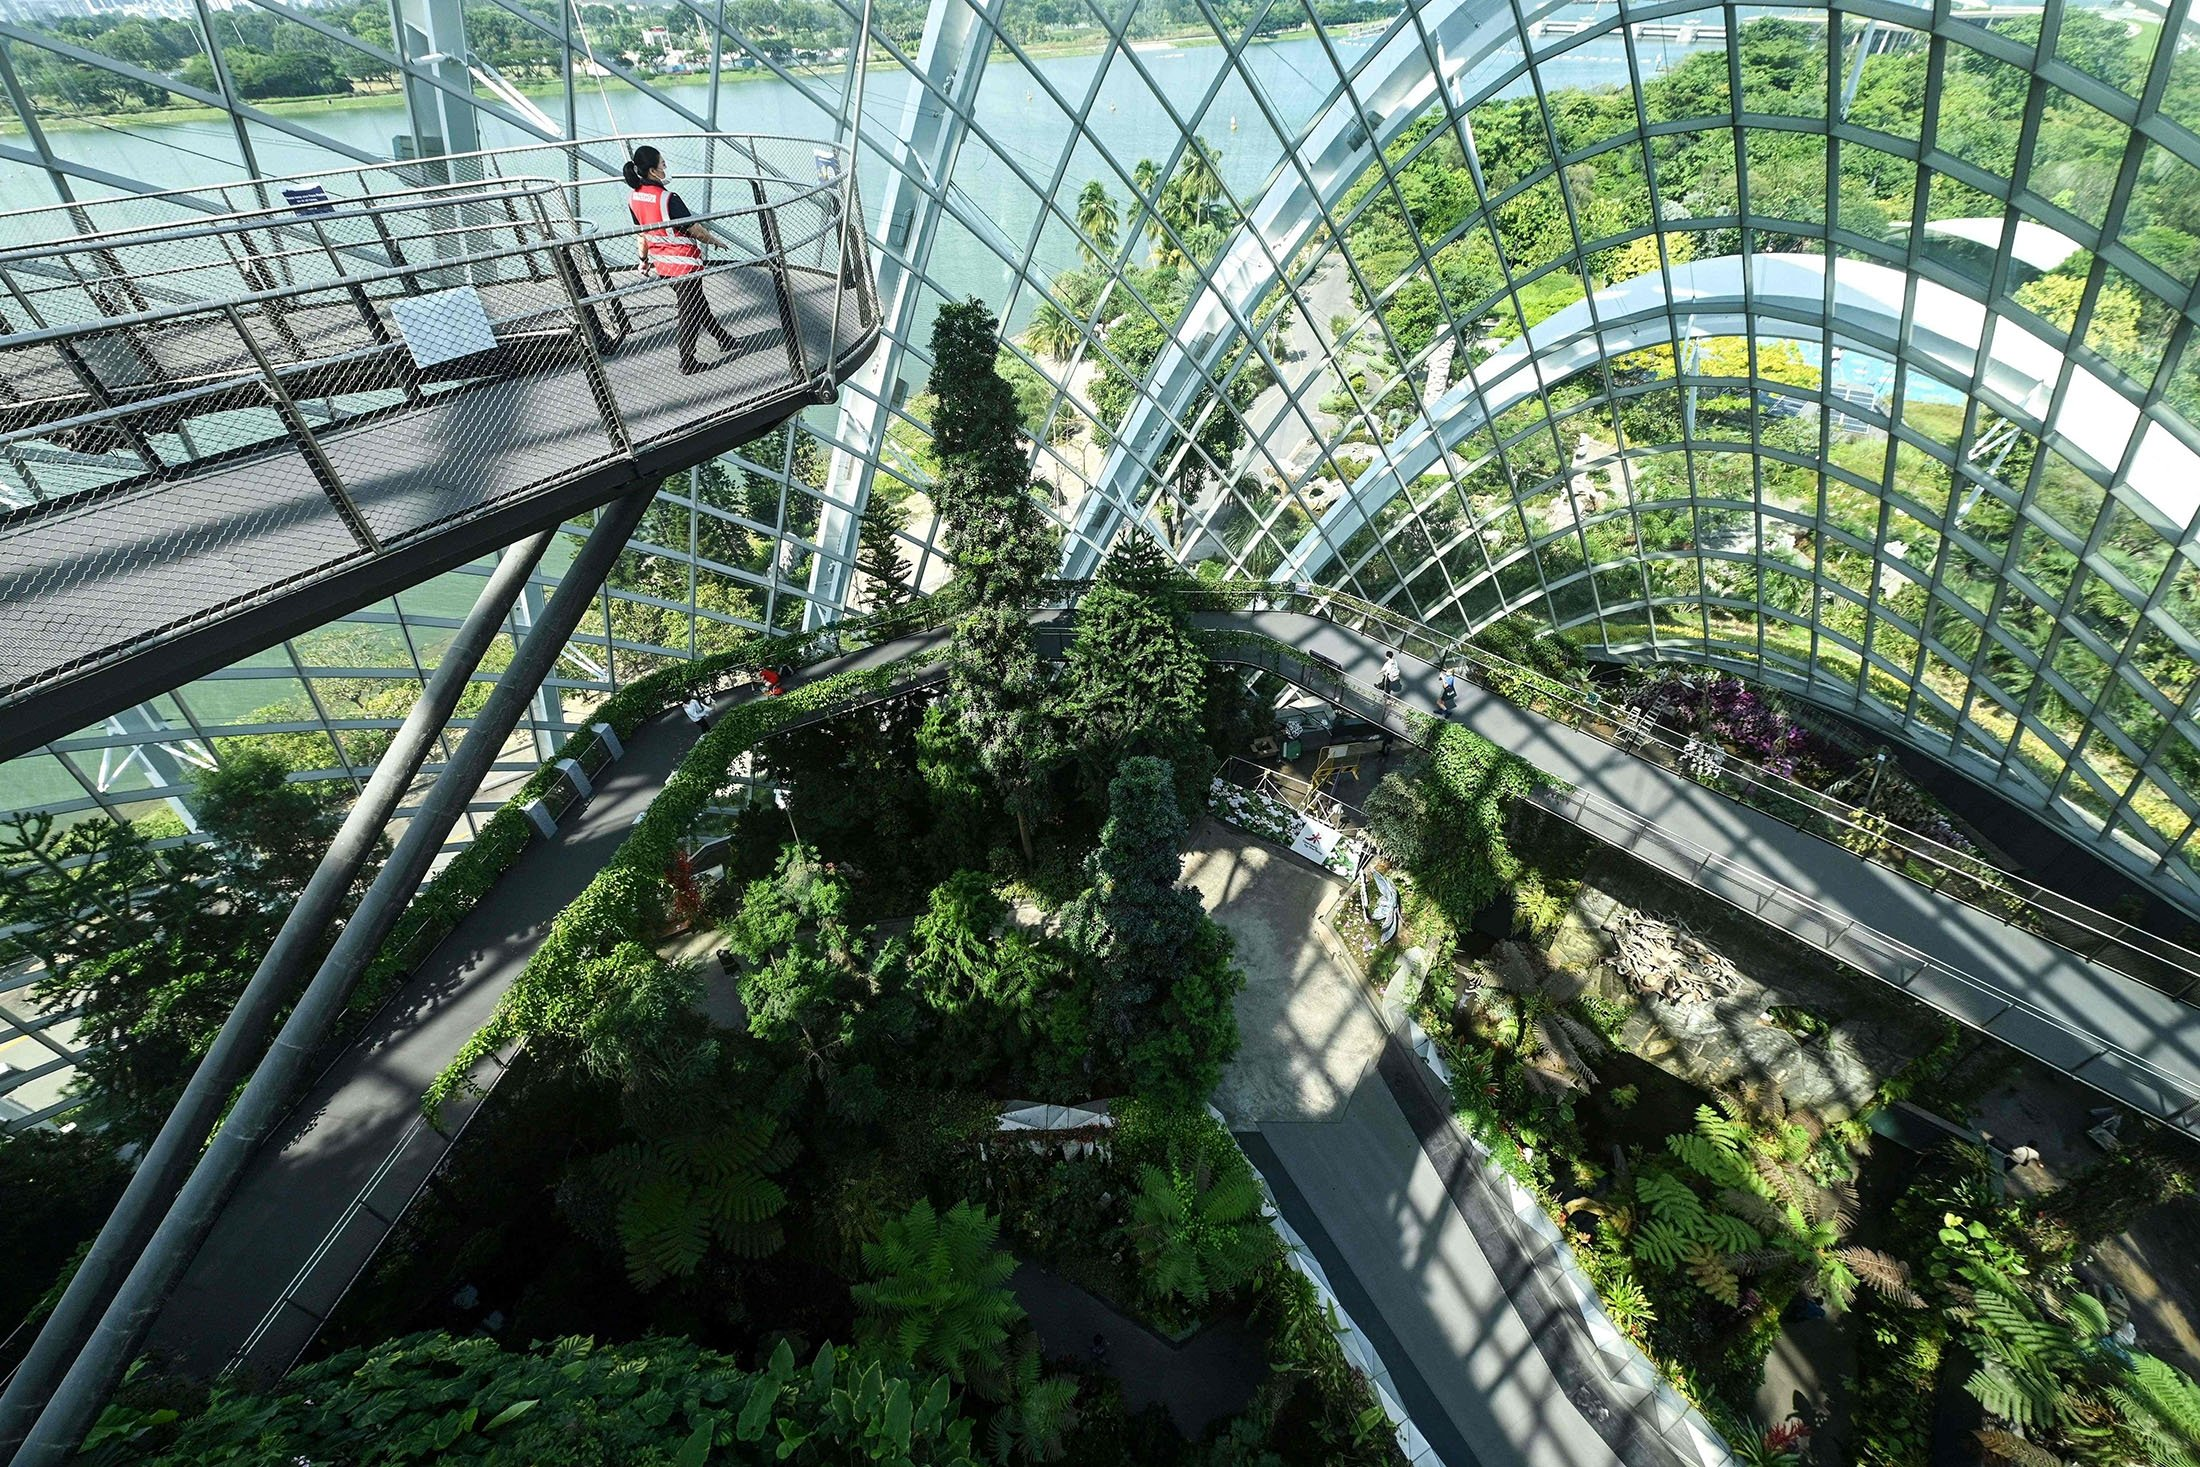 A view inside the Cloud Forest at Gardens by the Bay in Singapore, July 26, 2021. (AFP Photo)